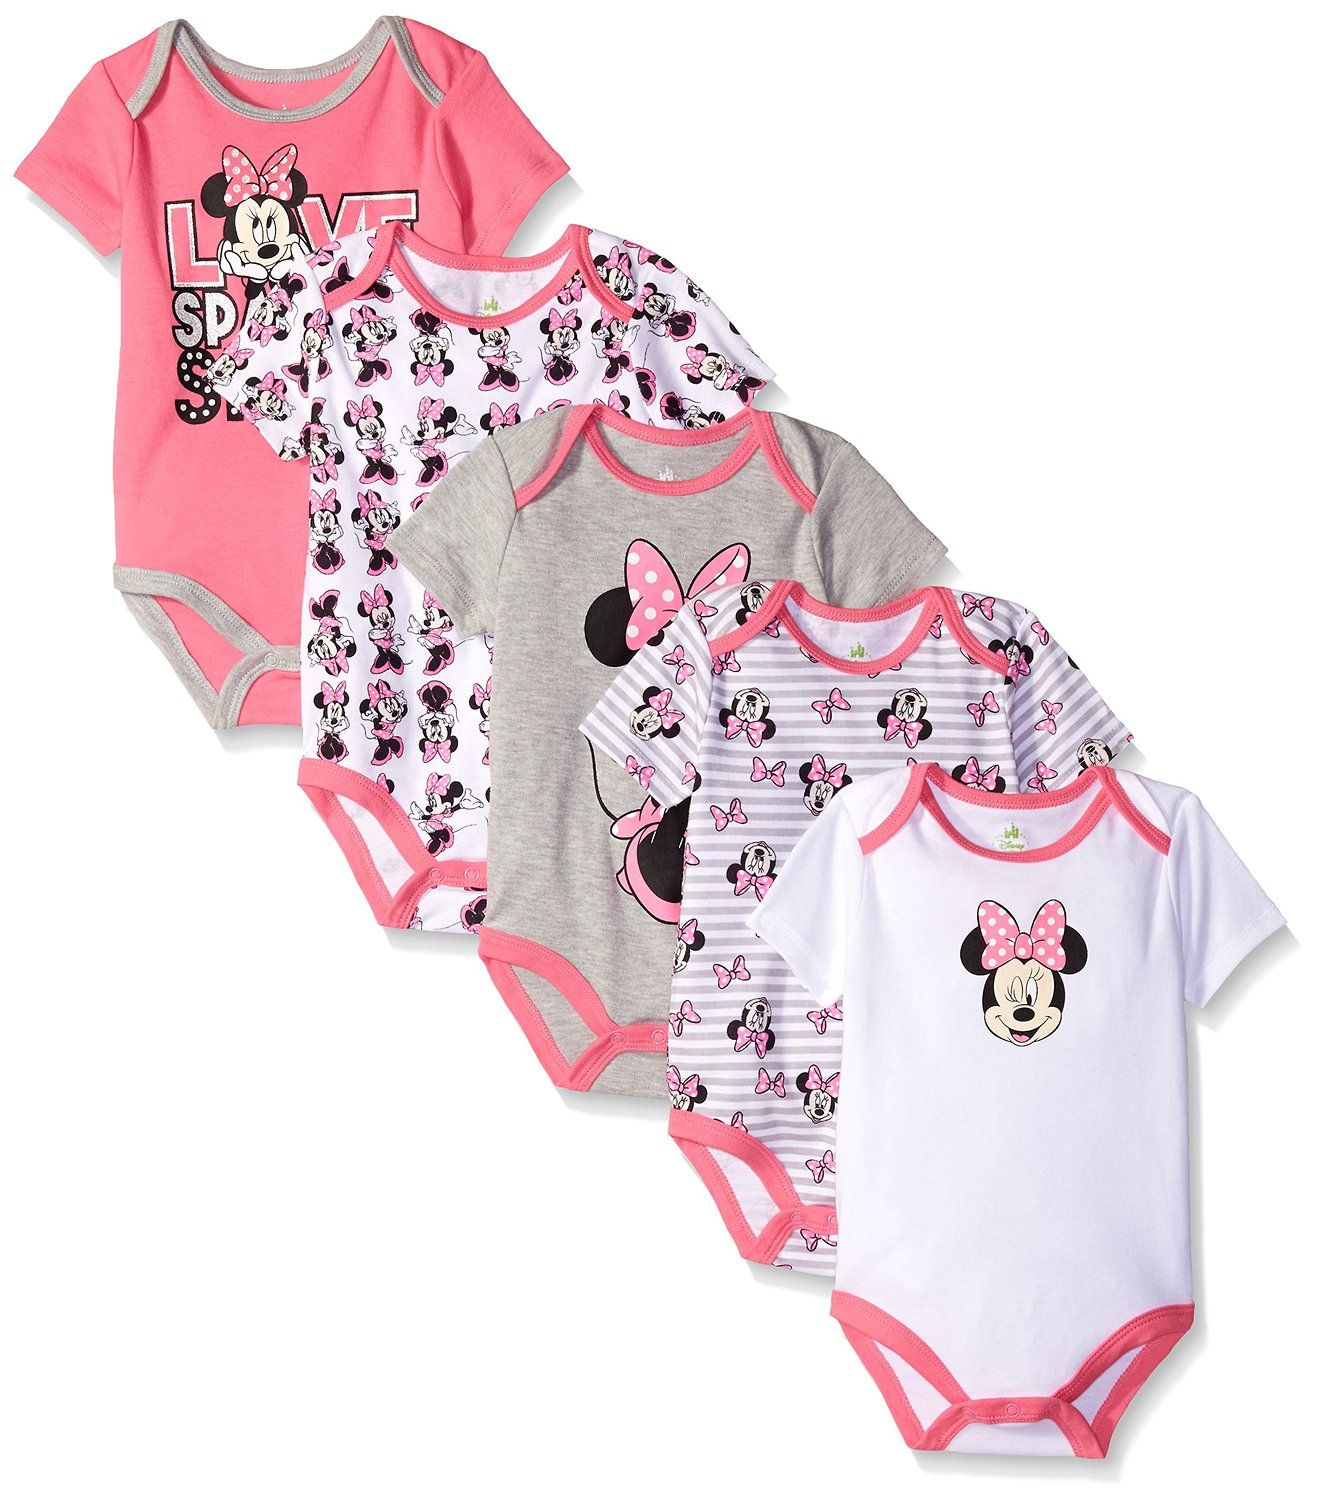 Disney Baby Girls Minnie Mouse 5 Pack Bodysuits You can